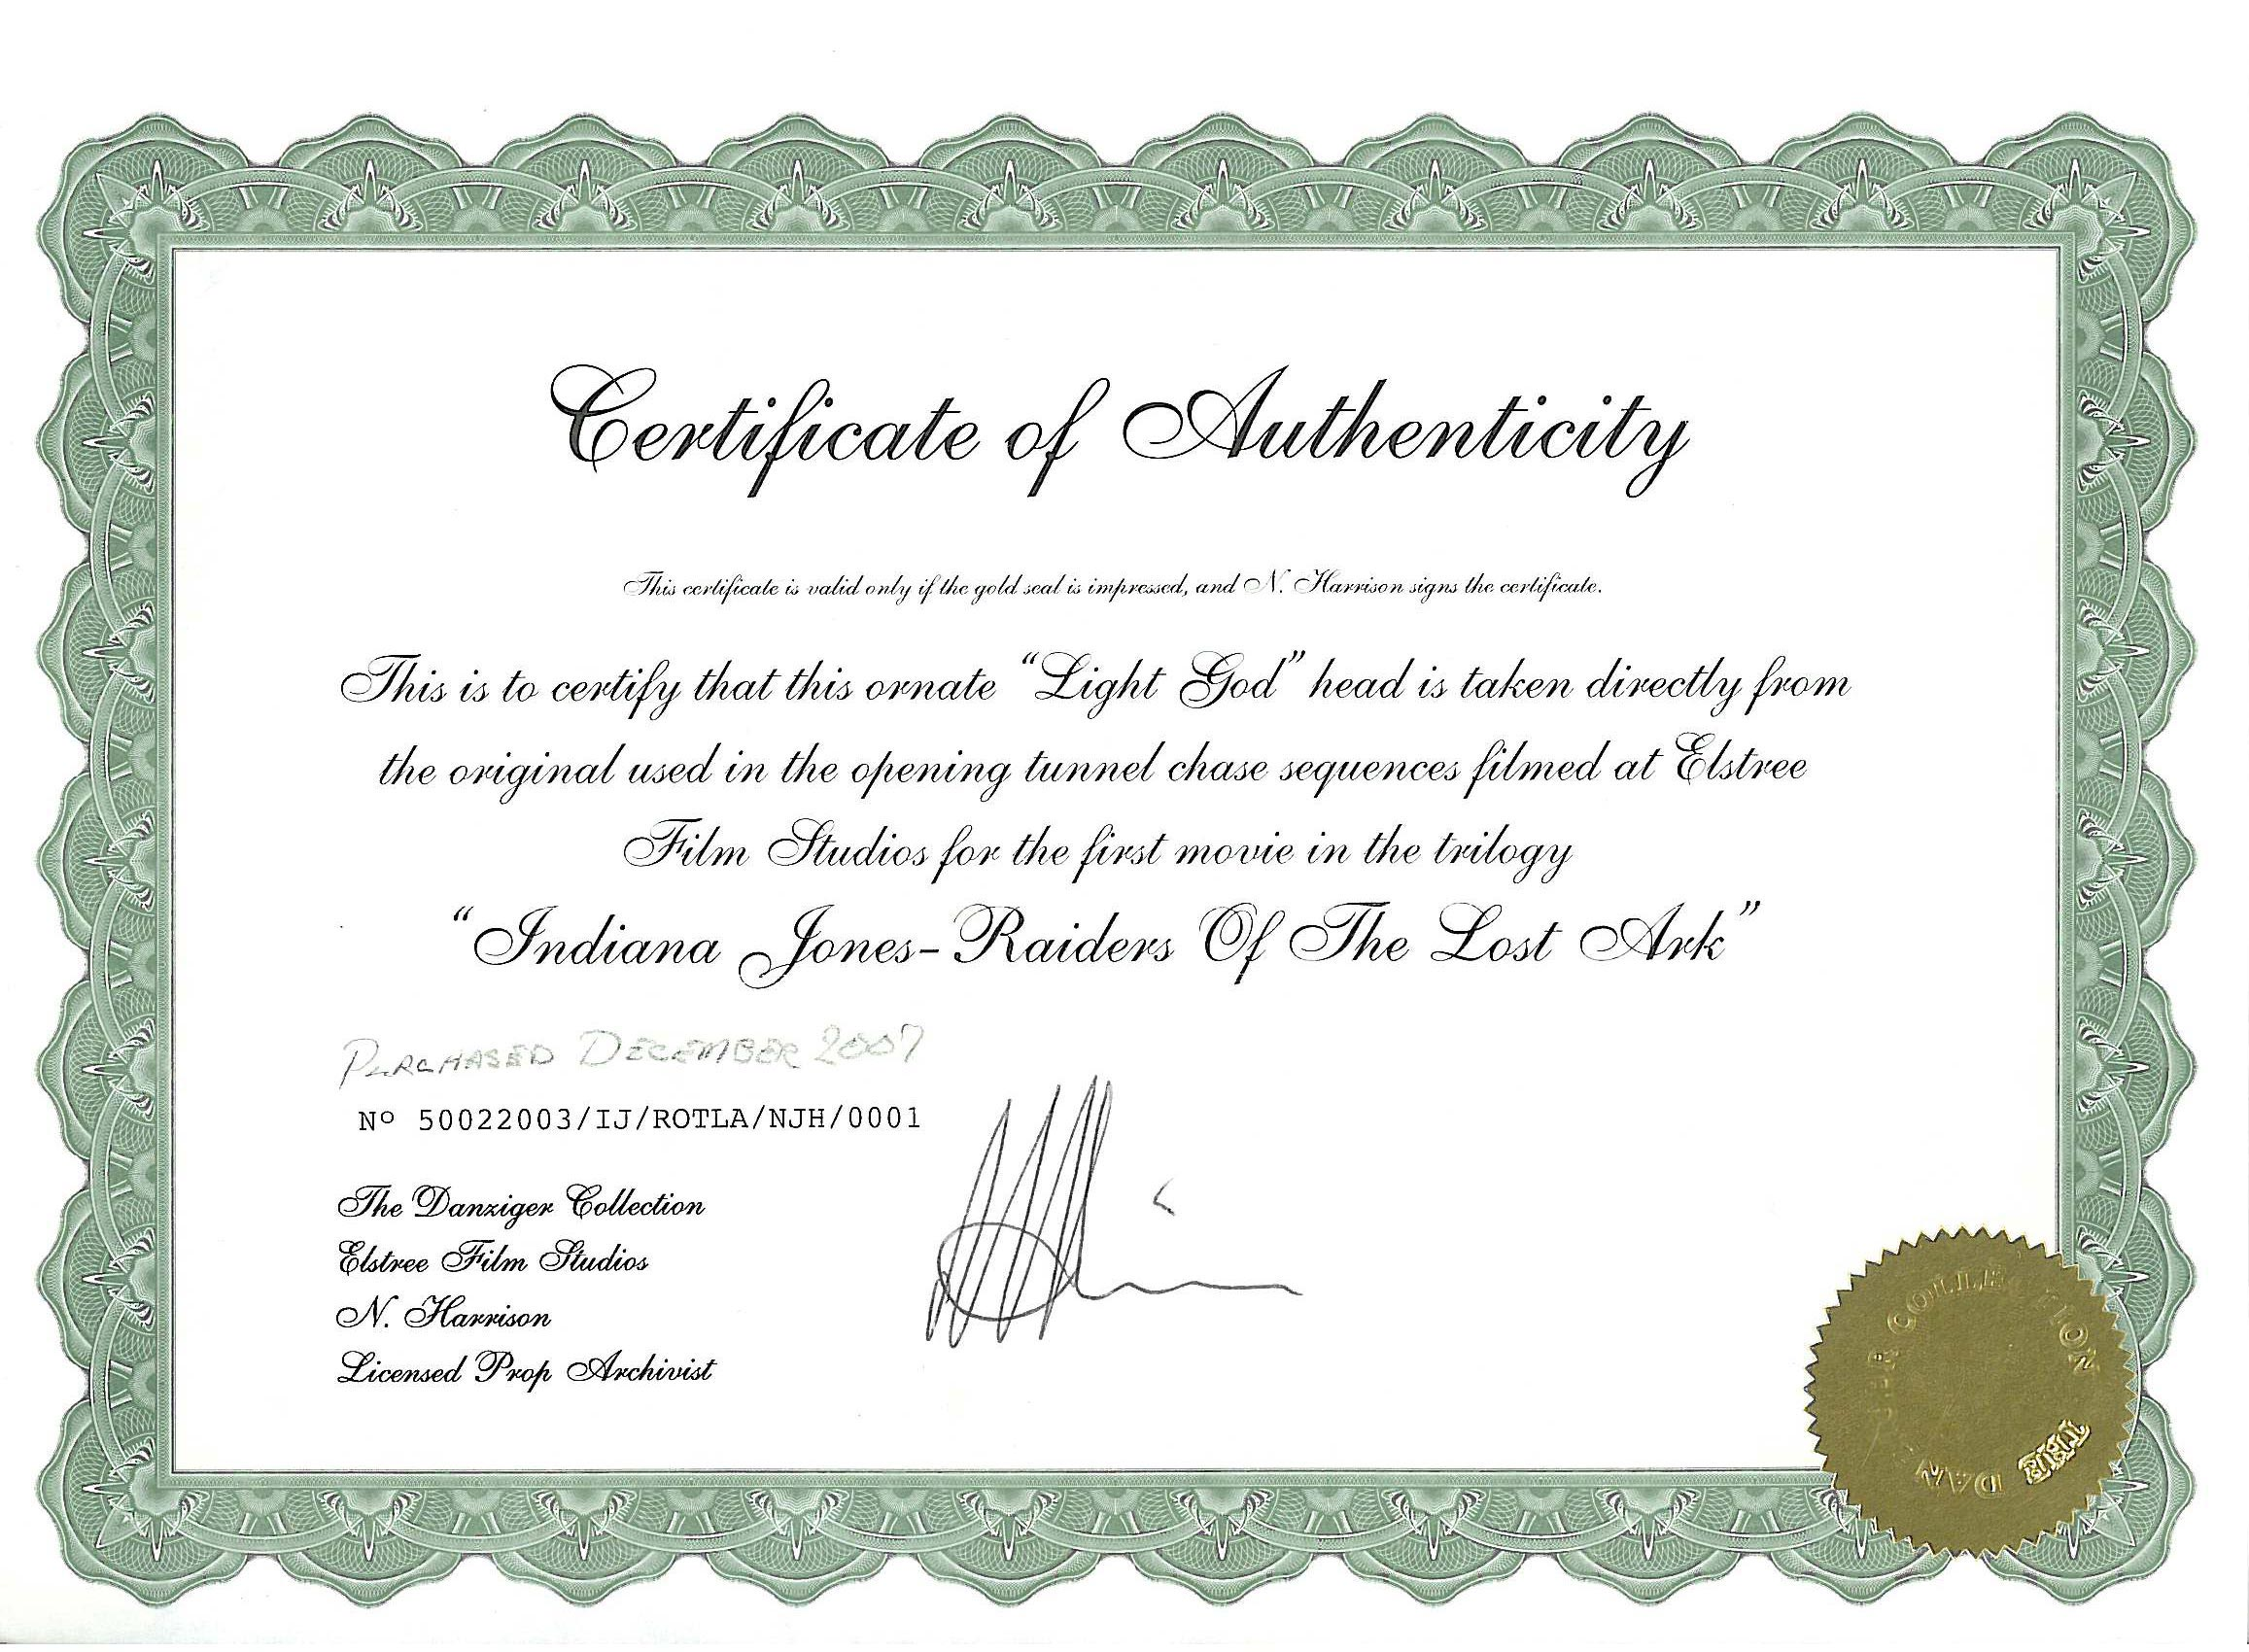 certificate of authenticity photography template - elstree props fertility idols light gods danziger